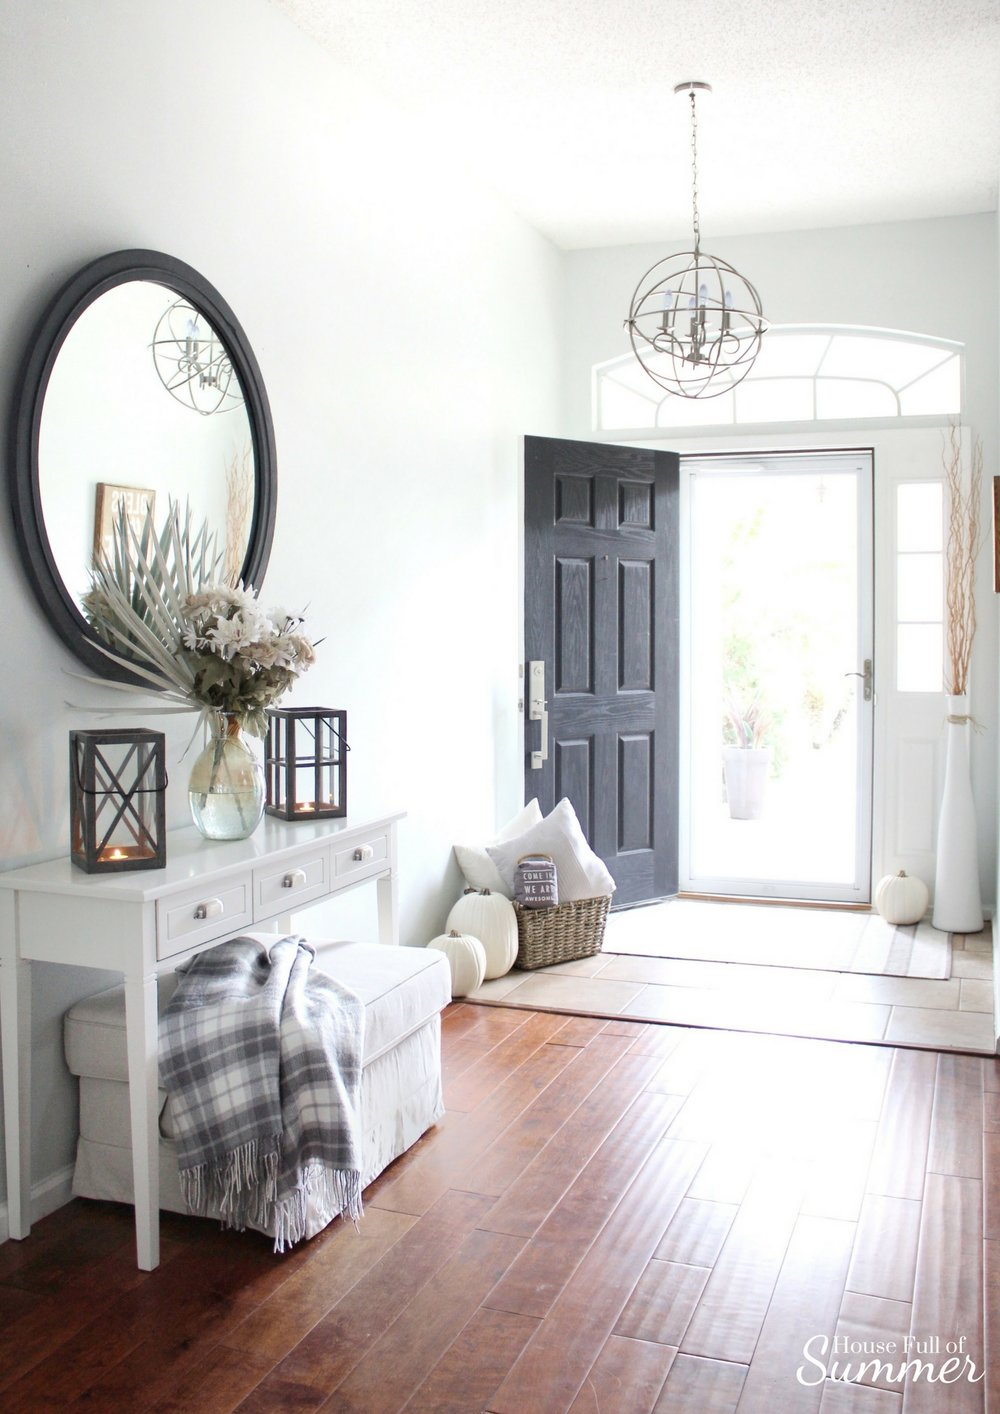 House Full of Summer: Fall Home Tour Blog Hop - Cozy, Coastal, Chic Foyer fall decorating ideas. Neutral interior, white pumpkins, front door decor, white console table, plaid throw, faux fall florals, entryway, wood floors, front door color, orb chandelier, round mirror, lanterns, ottoman